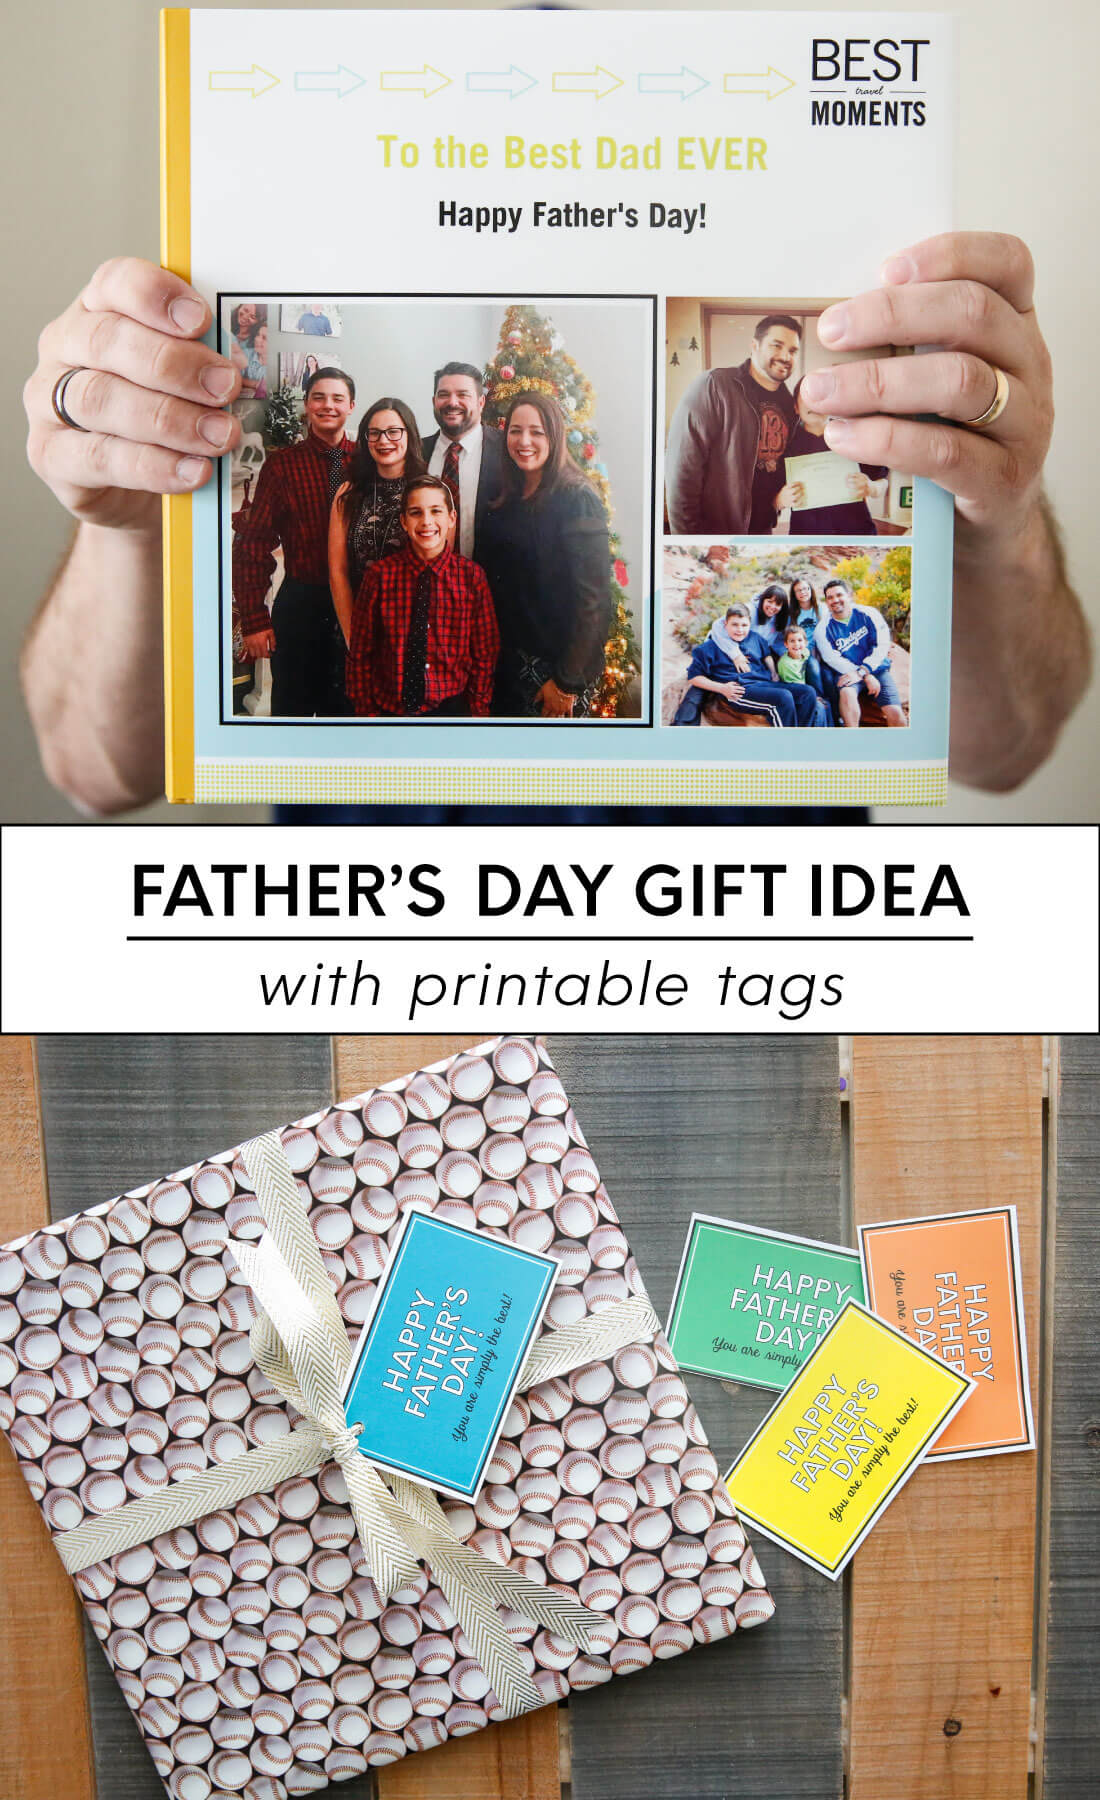 Father's Day Gift Idea with printable tags - use this service from Shutterfly to create a one of a kind photo album for dad. www.thirtyhandmadedays.com